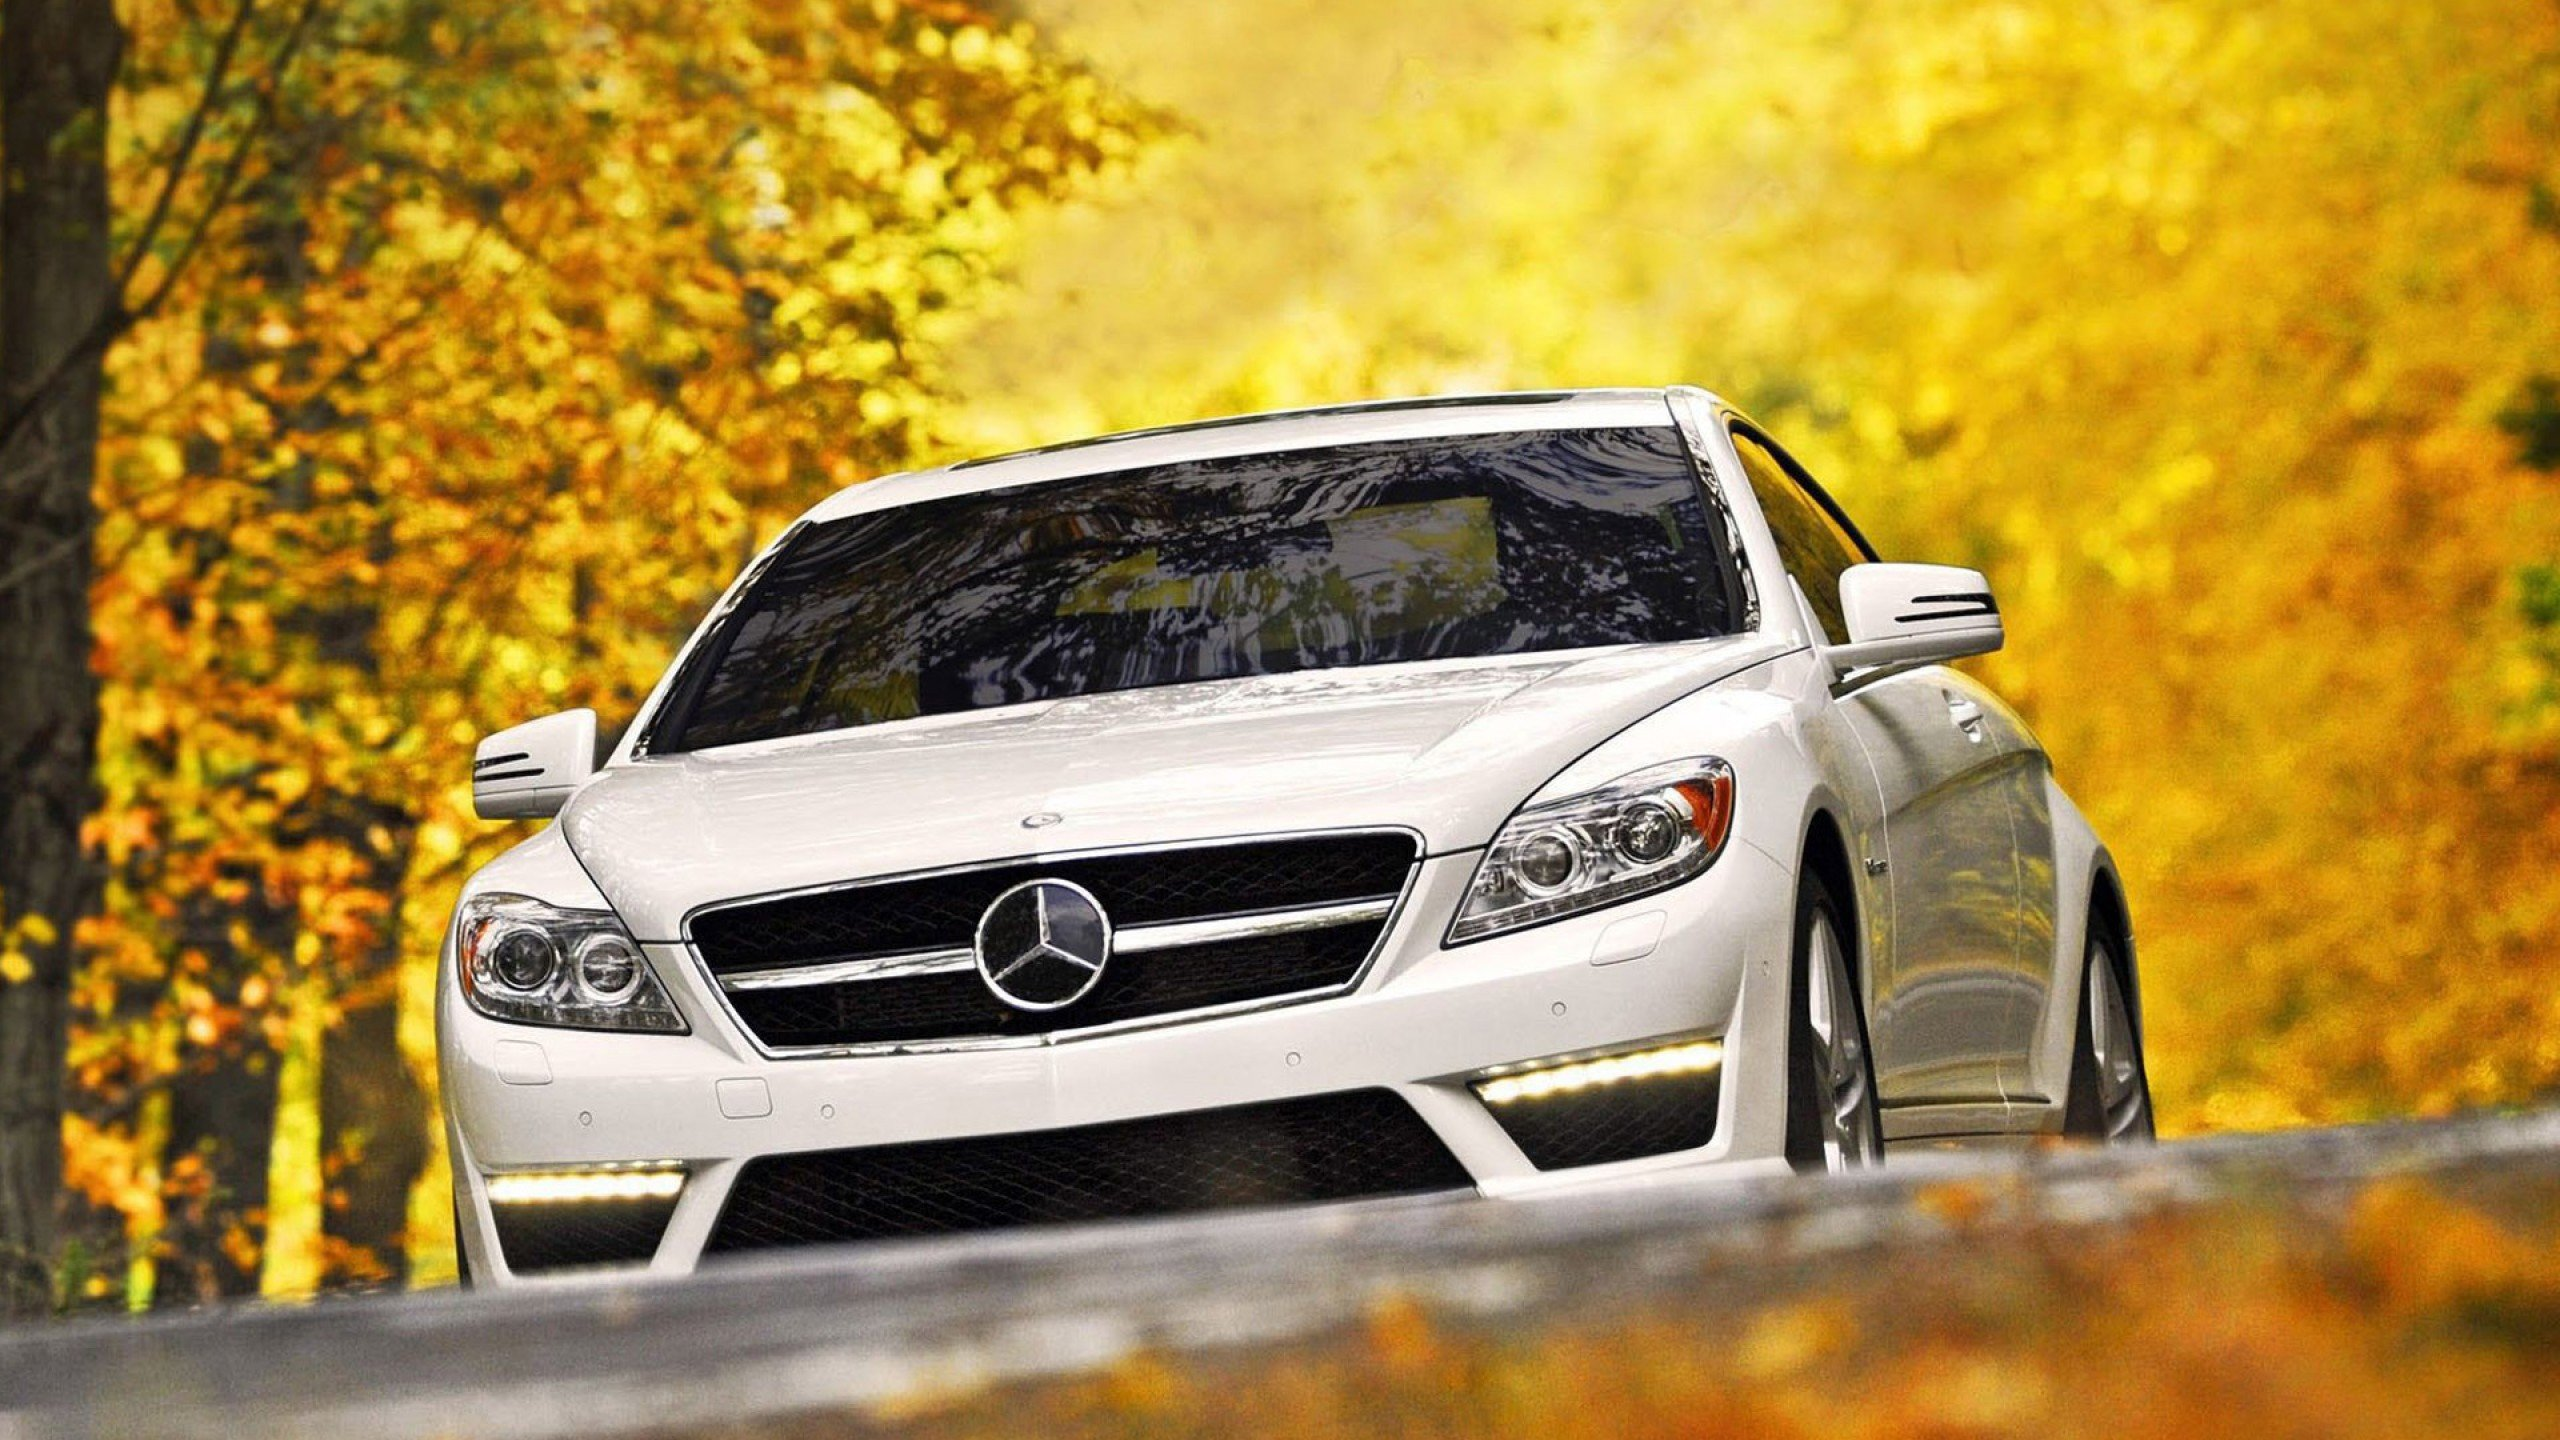 Cool White Mercedes Benz Wallpaper Picture - Likegrass com